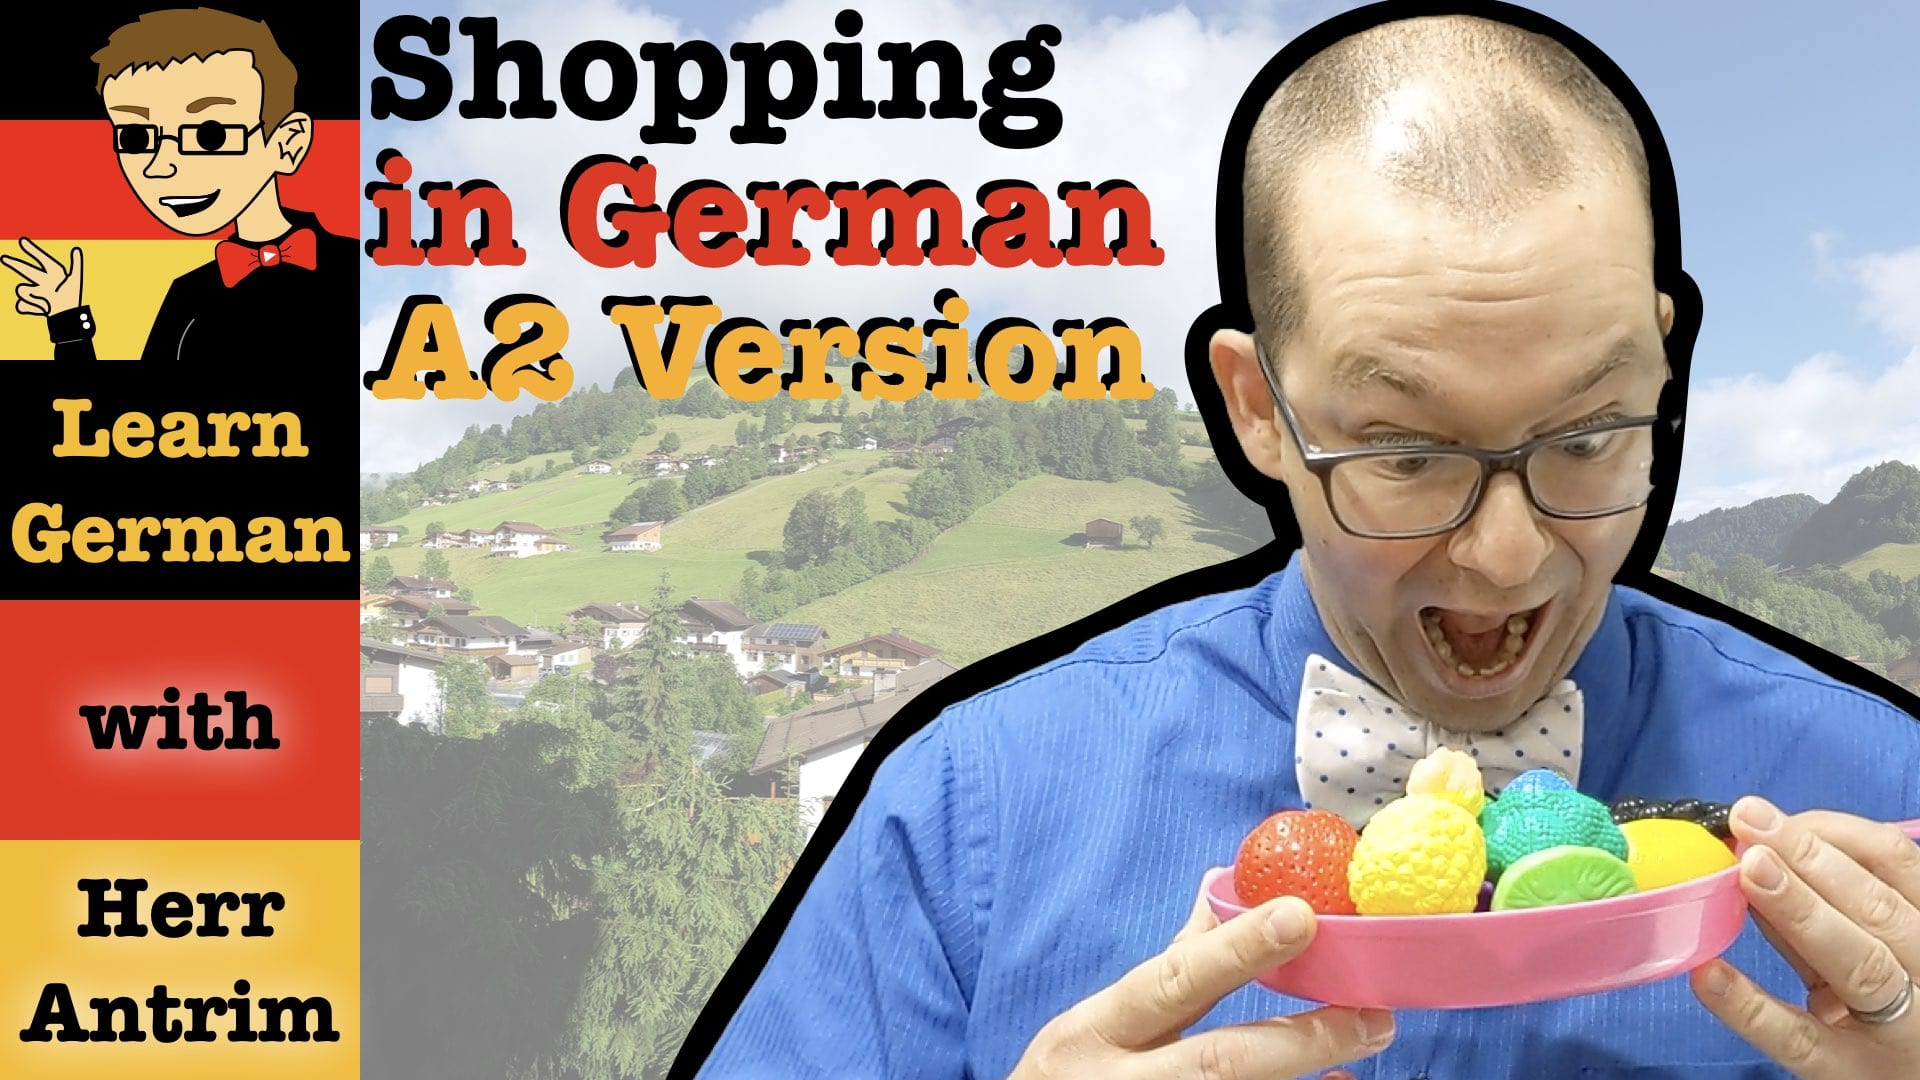 Grocery Shopping in German for A2 German Learners